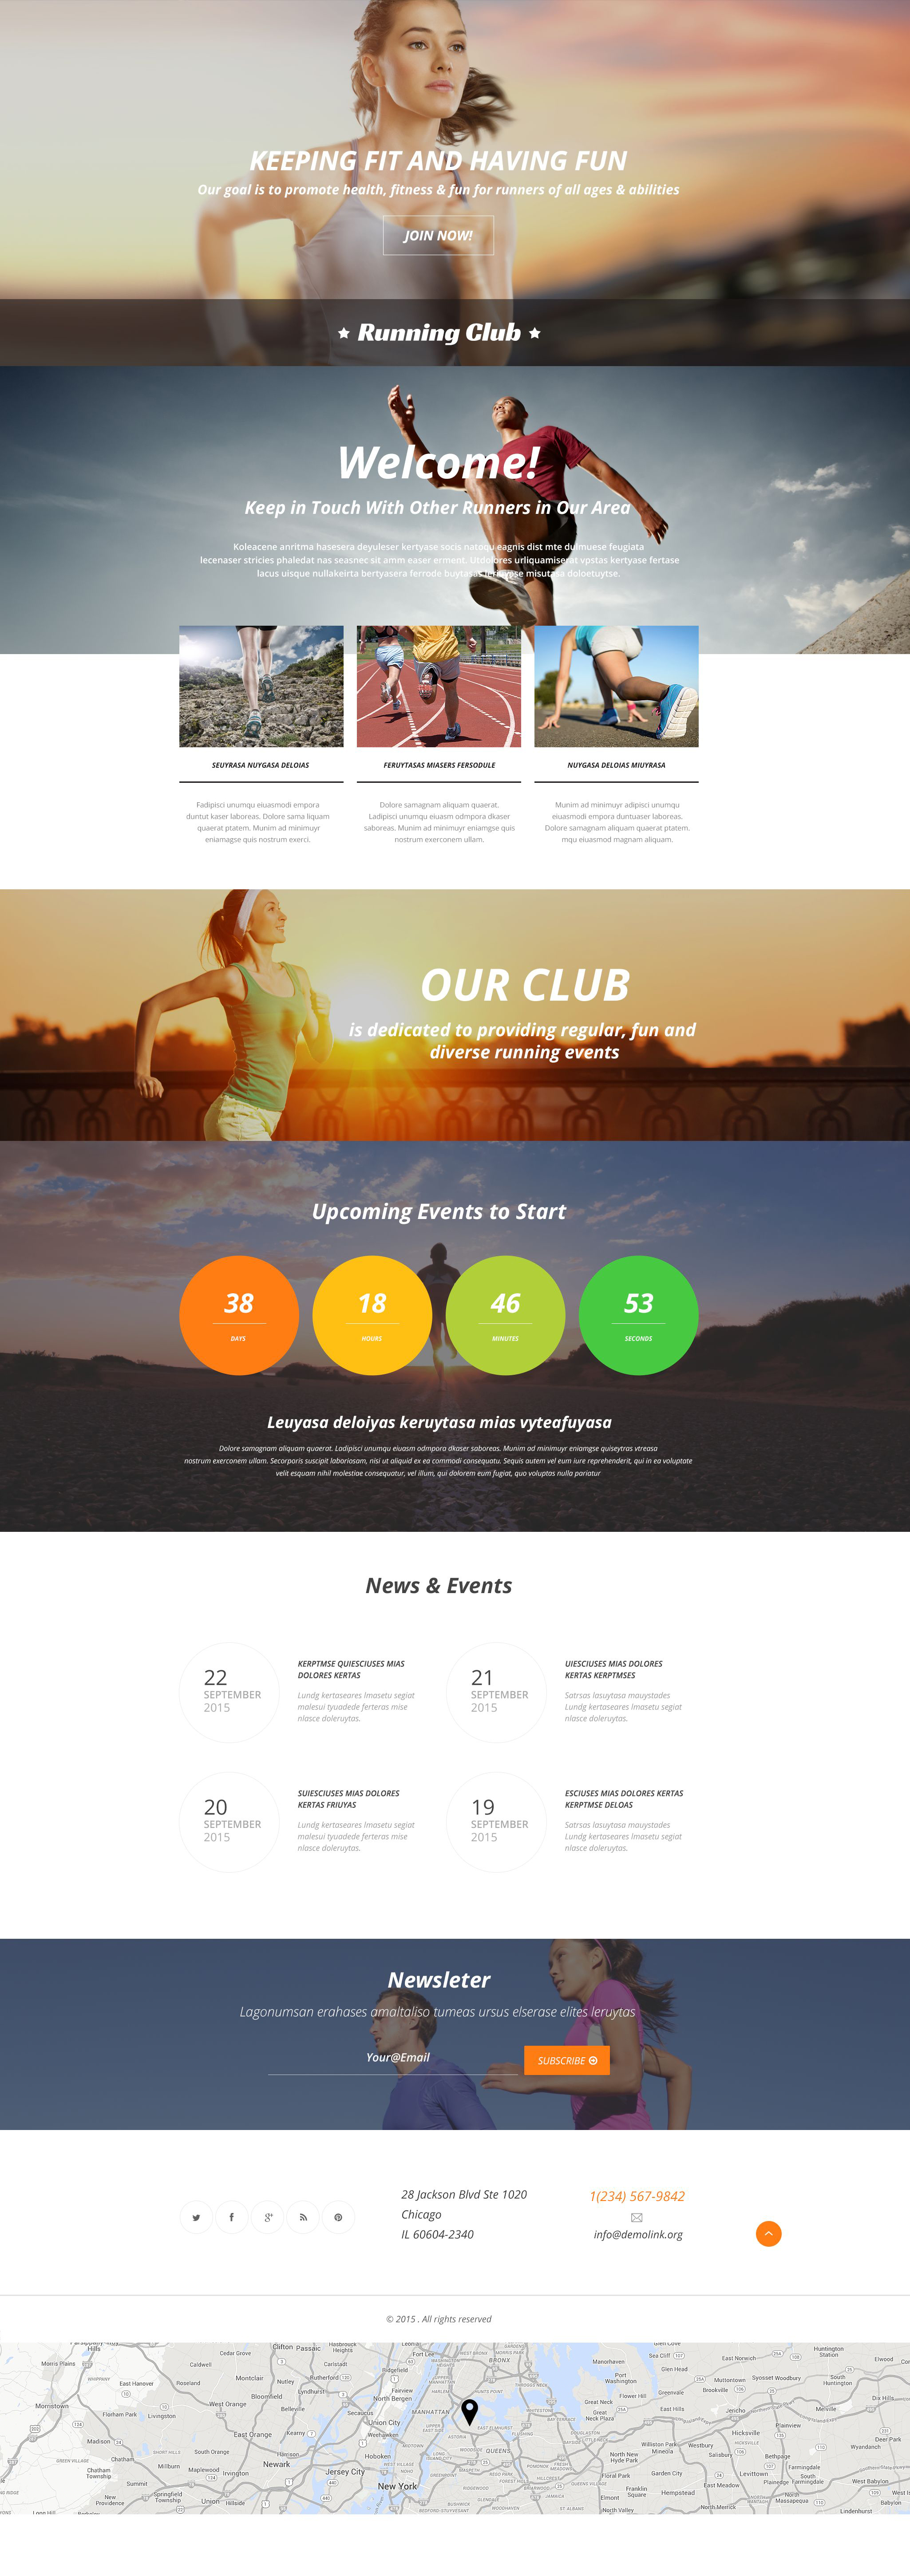 The Running Club Landing Page Template Design 54560, one of the best Landing Page templates of its kind (sport, most popular), also known as running club Landing Page template, jogging Landing Page template, entertainment Landing Page template, races Landing Page template, championship Landing Page template, tournament Landing Page template, sportsman Landing Page template, training Landing Page template, community Landing Page template, schedule Landing Page template, application Landing Page template, track Landing Page template, statistic Landing Page template, fan Landing Page template, media Landing Page template, ticket Landing Page template, interview Landing Page template, coacher Landing Page template, leadership Landing Page template, team Landing Page template, energy Landing Page template, skill Landing Page template, sponsors Landing Page template, gallery and related with running club, jogging, entertainment, races, championship, tournament, sportsman, training, community, schedule, application, track, statistic, fan, media, ticket, interview, coacher, leadership, team, energy, skill, sponsors, gallery, etc.